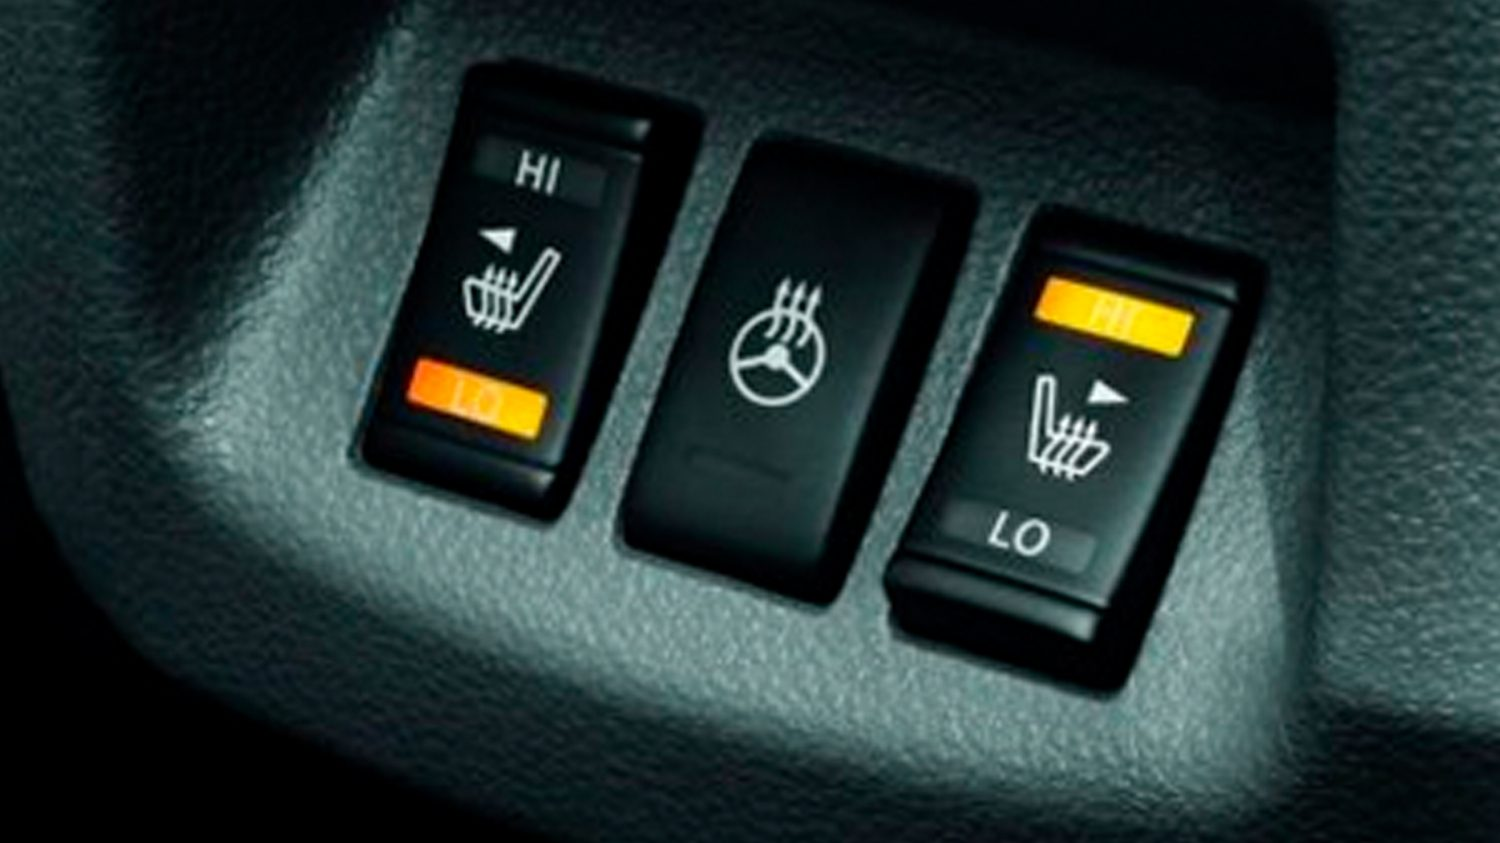 New Nissan e-NV200 heated front seats and steering wheel buttons